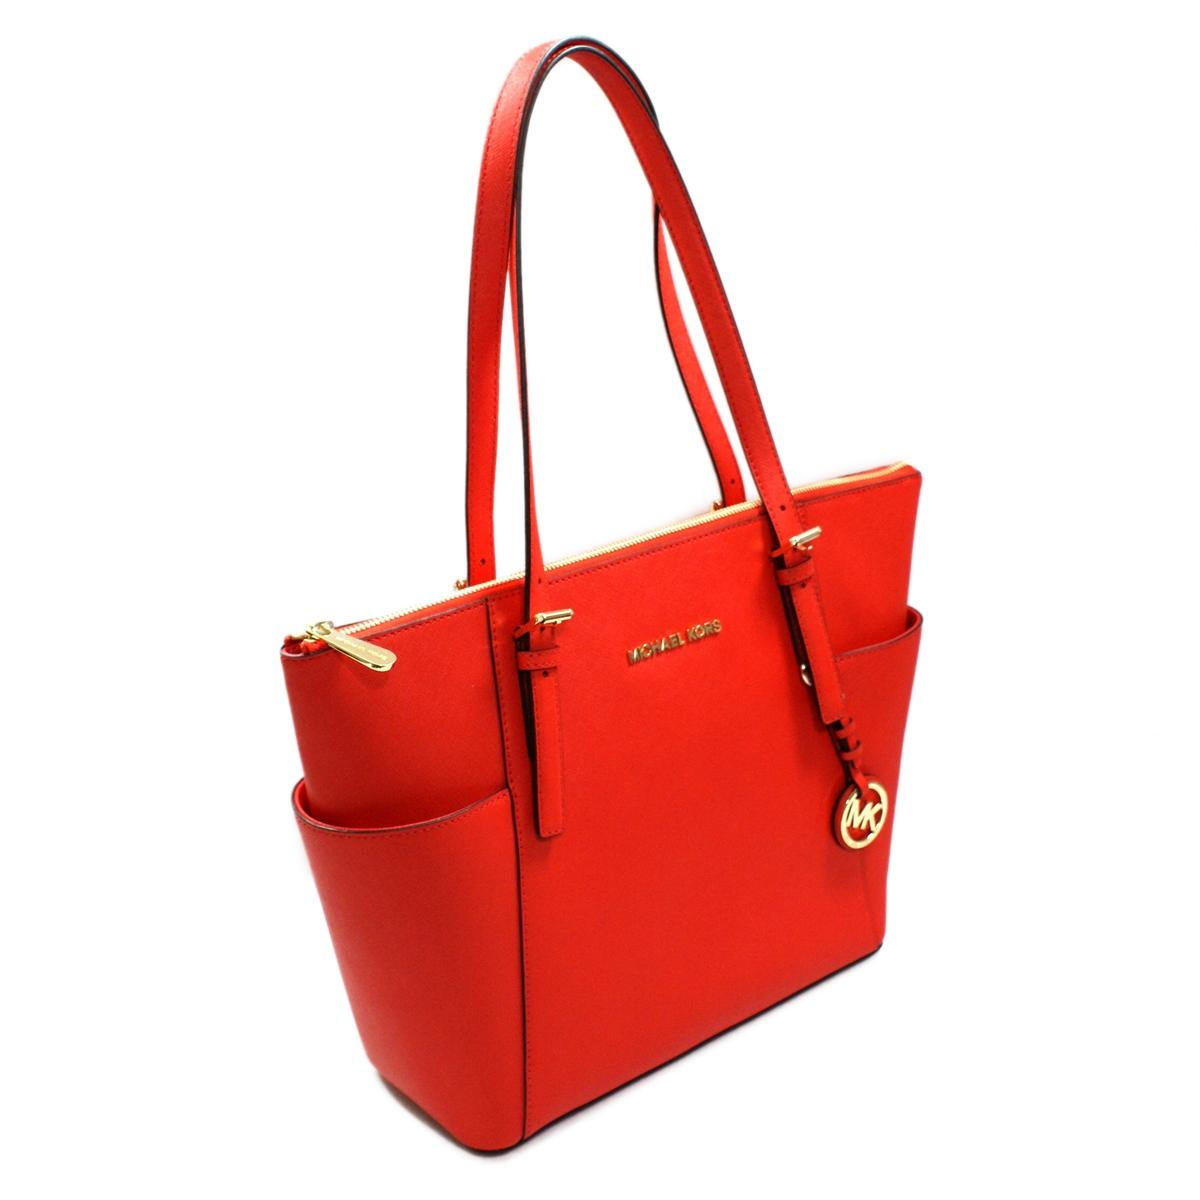 e2f2bba572c1 ... best home michael kors jet set east west genuine leather tote mandarin. click  thumbnail to